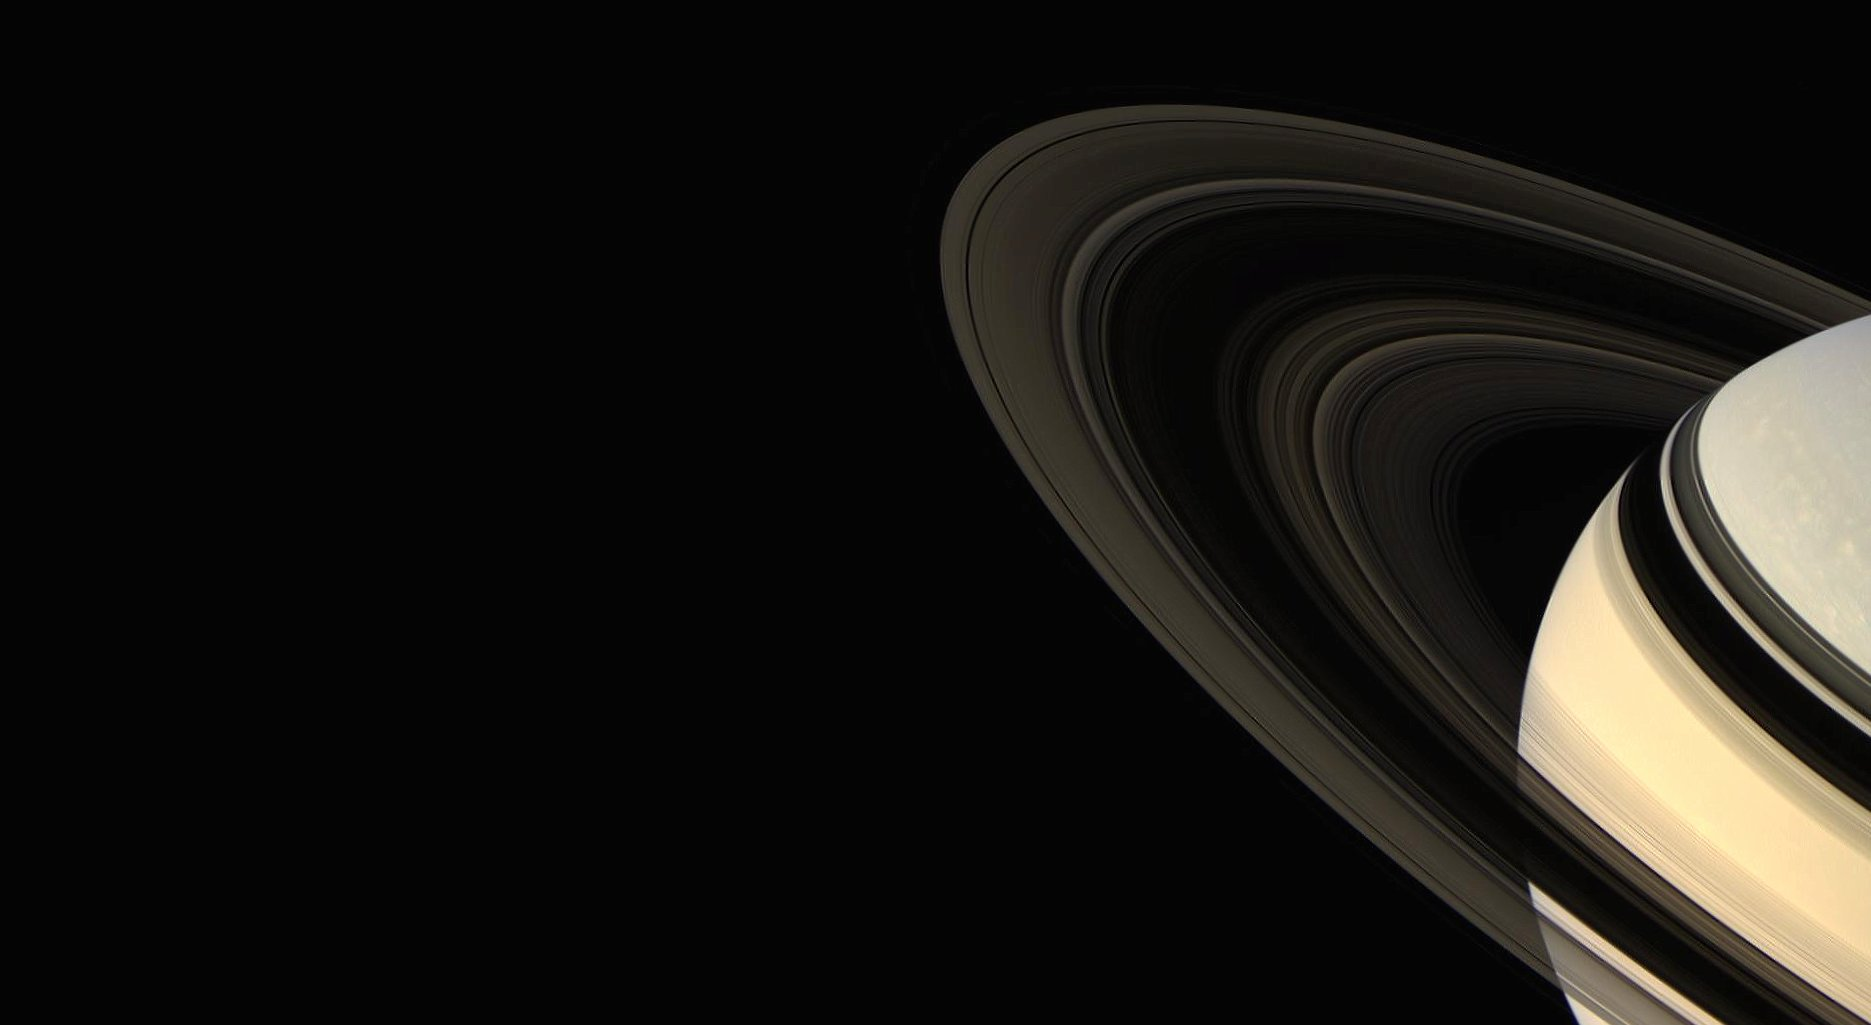 Saturn and the rings wallpapers HD quality